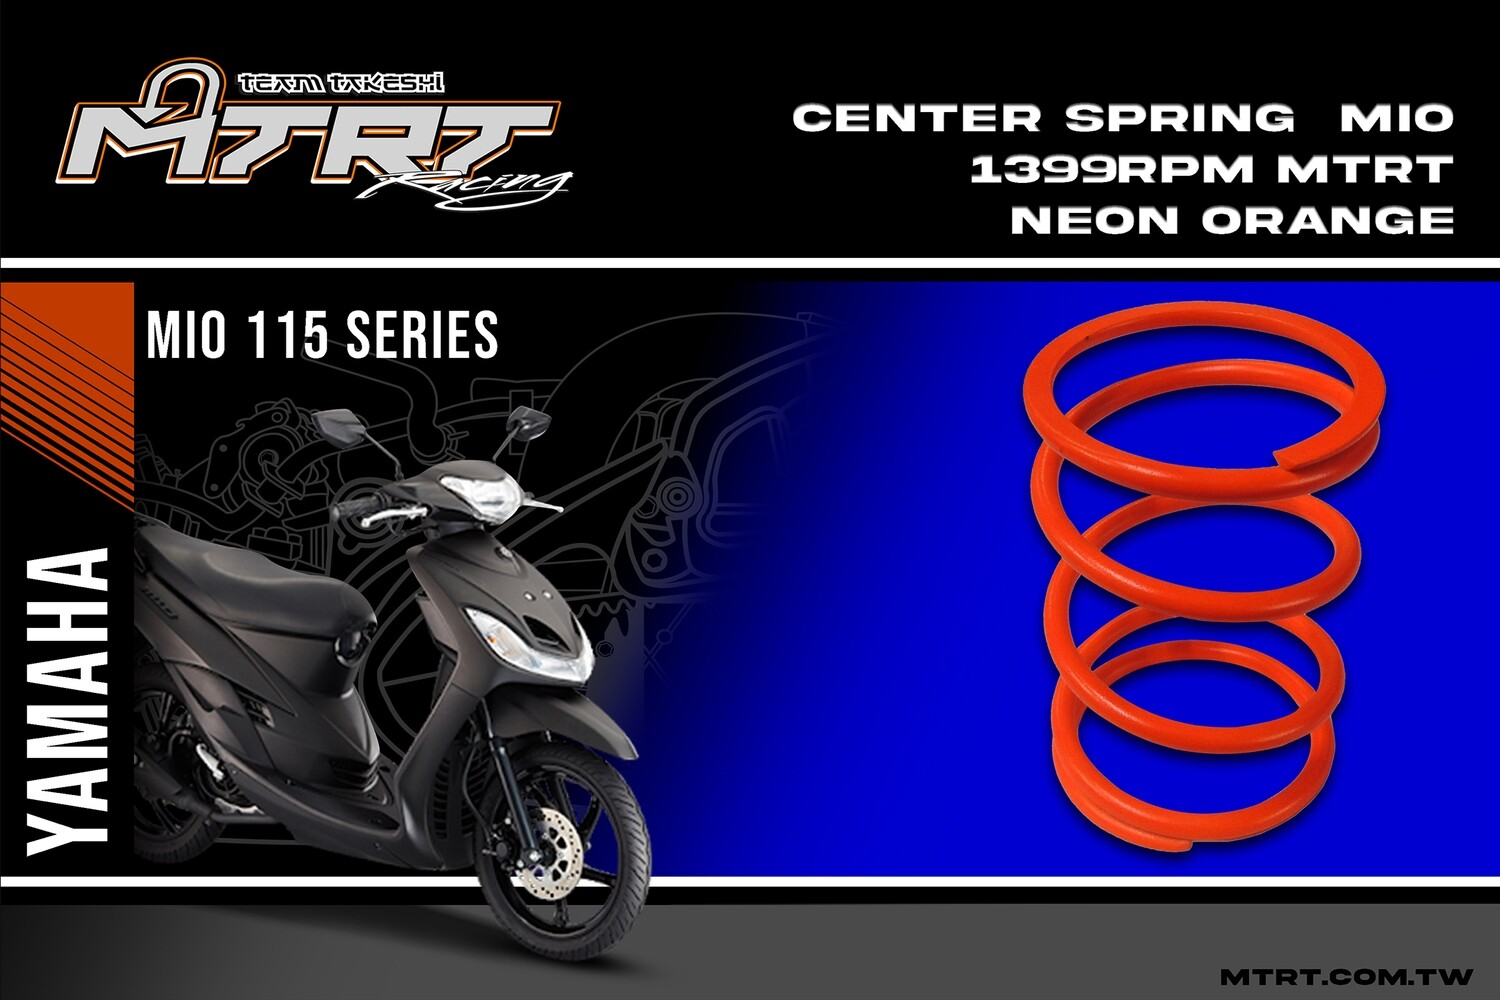 CENTER SPRING  MIO 1399rpm MTRT Neon Orange